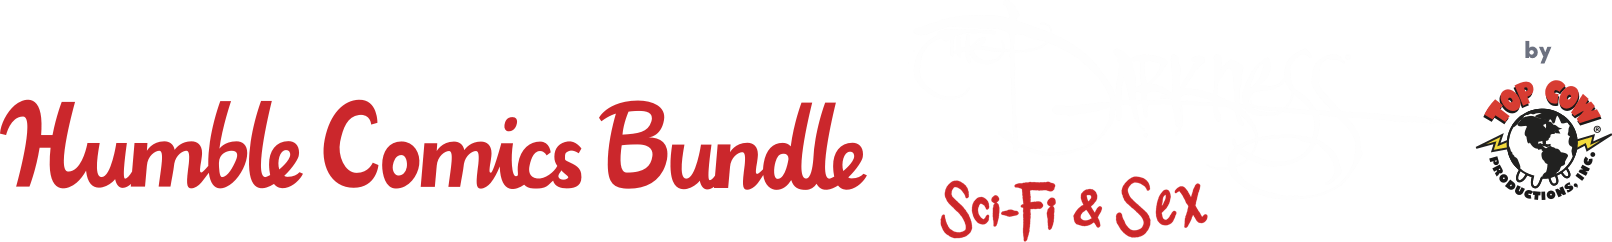 Humble Comics Bundle: The Darkness: Sci-fi & Sex by Top Cow